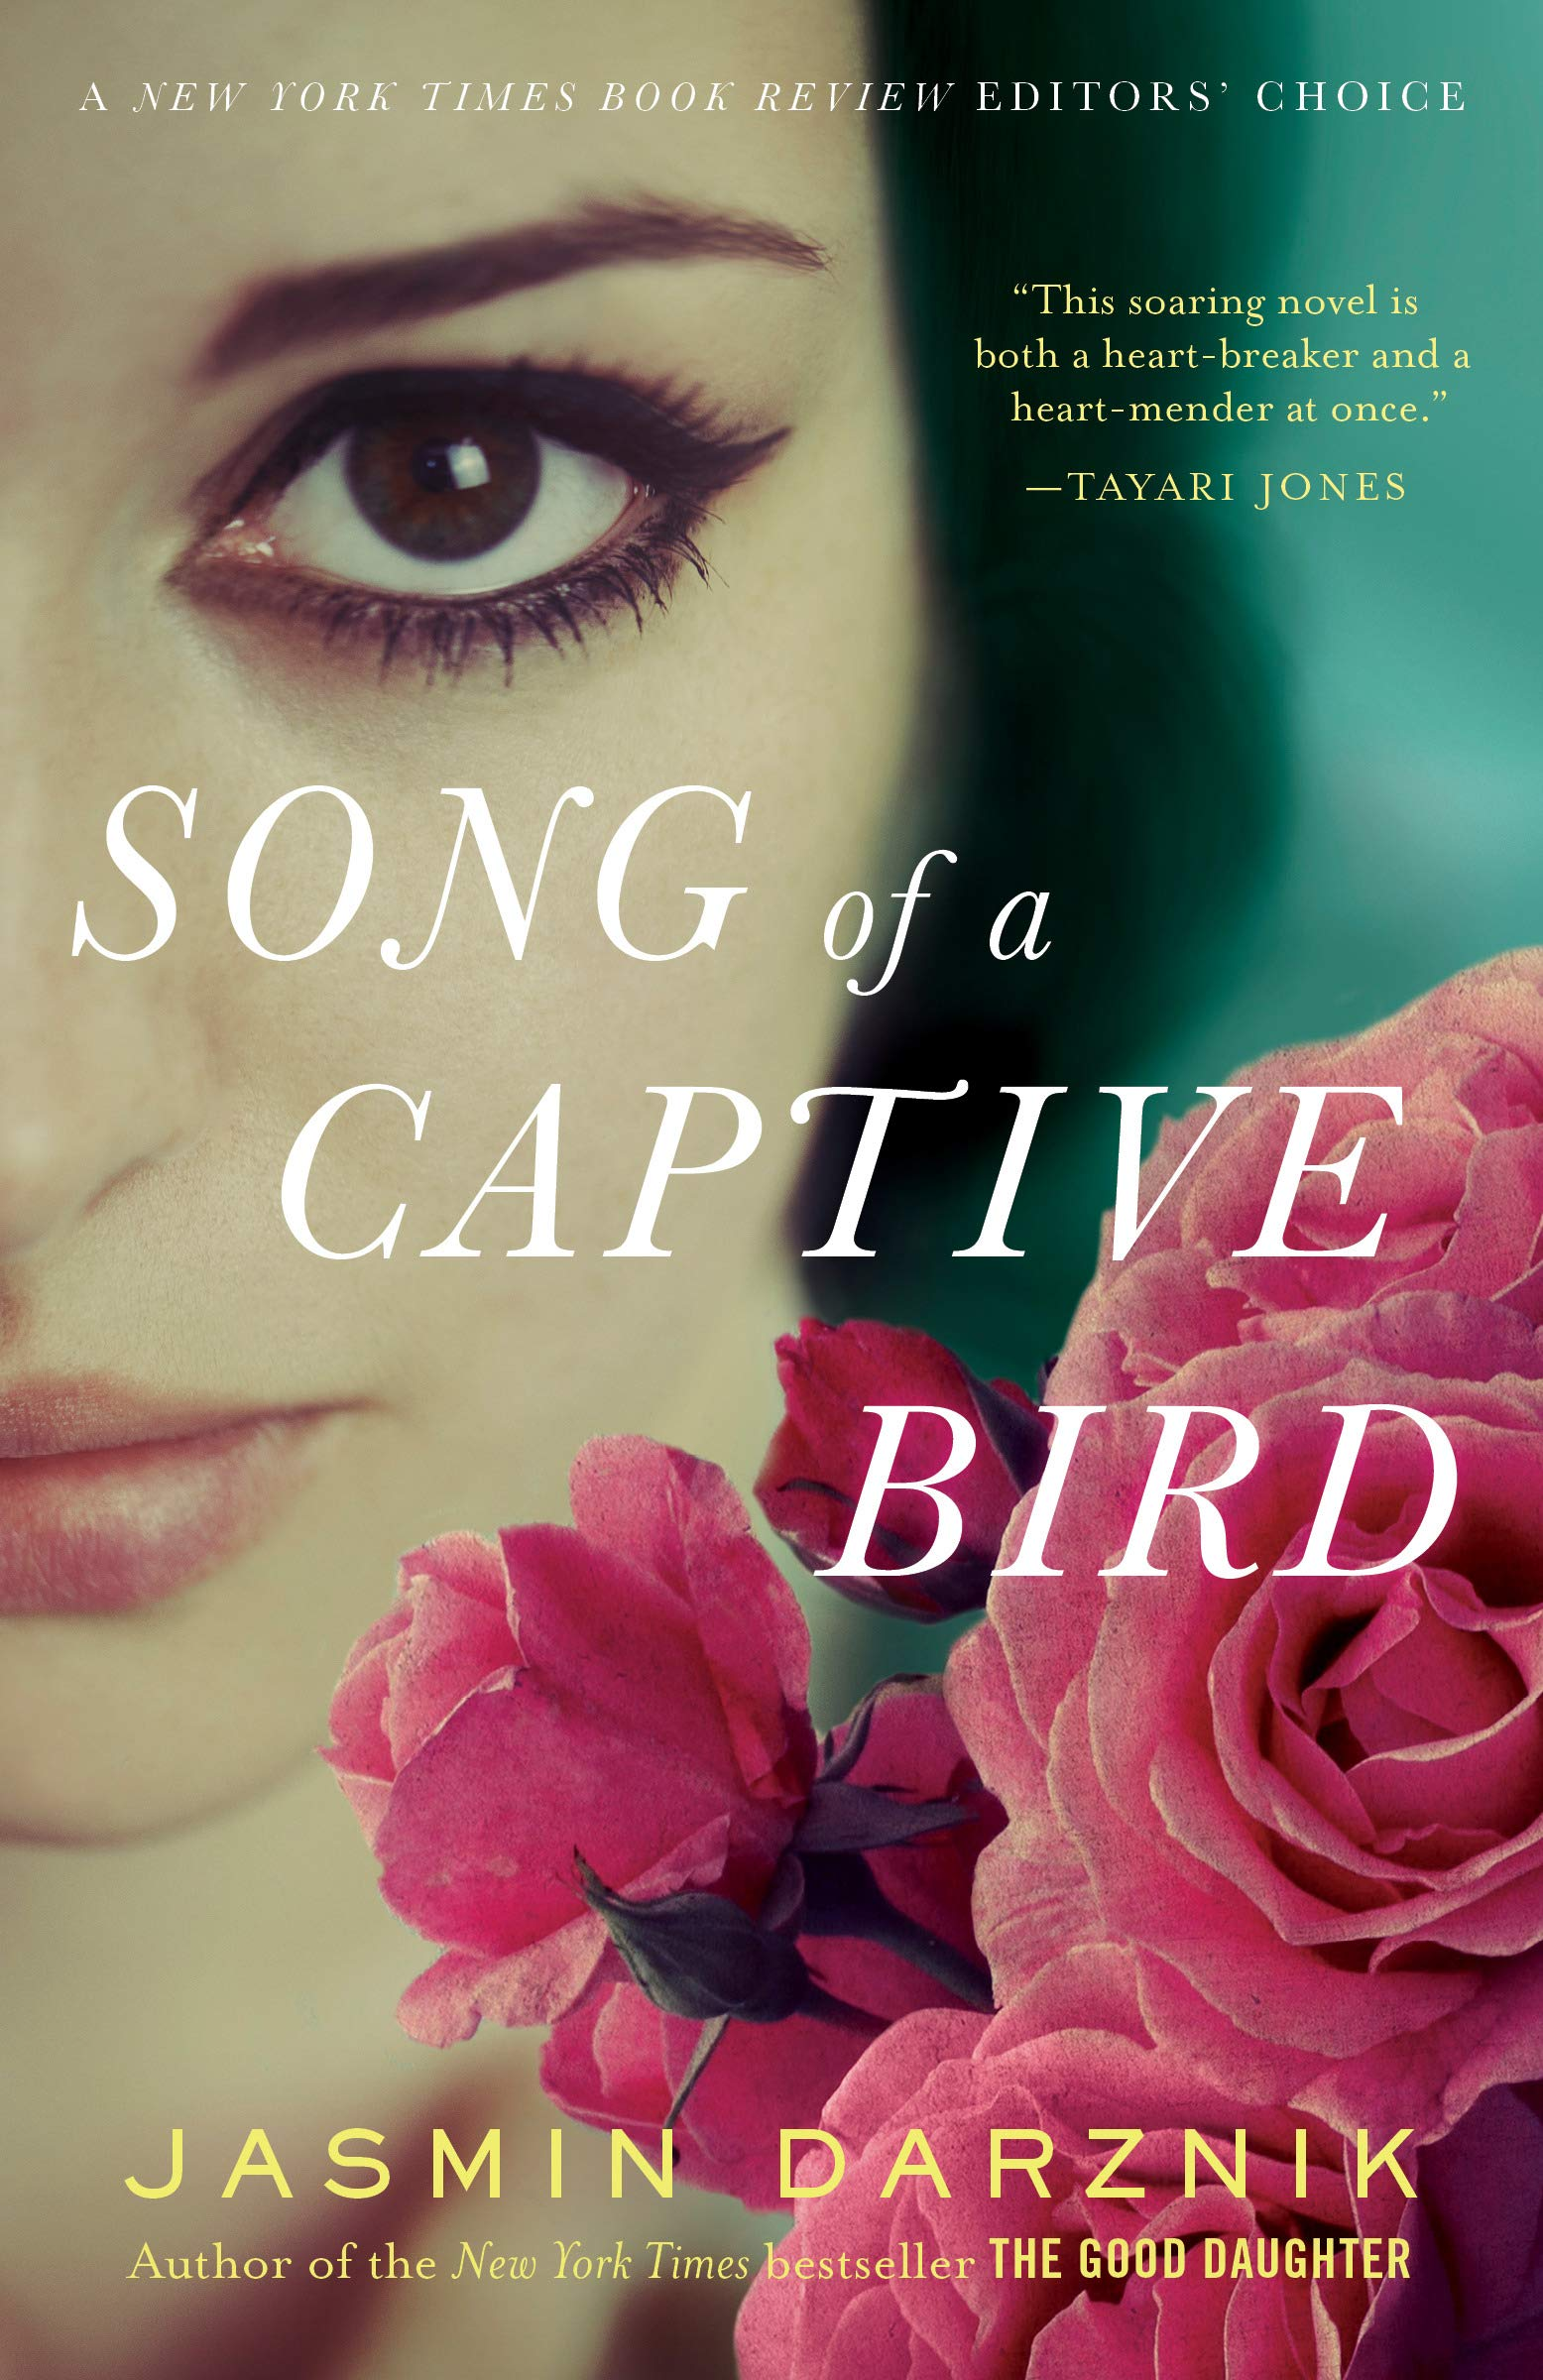 Song of a Captive Bird: A Novel